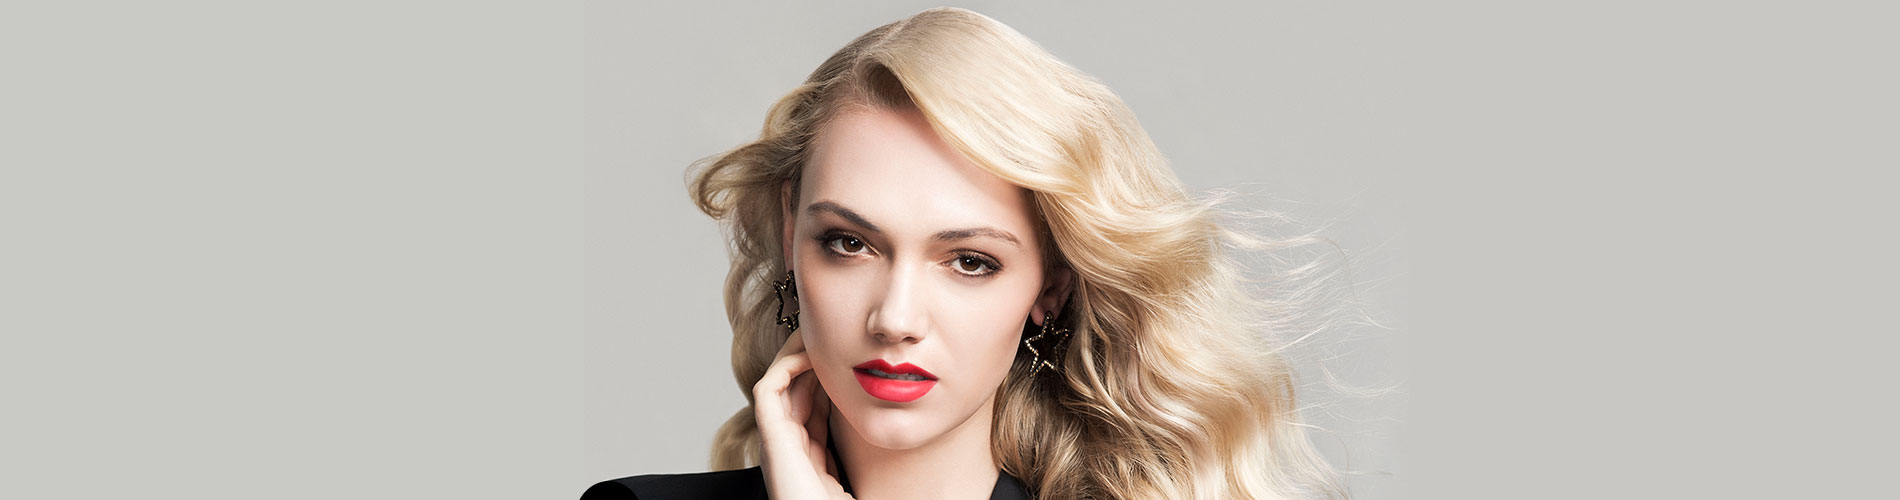 rpr mycolour blonde girl with red lipstick